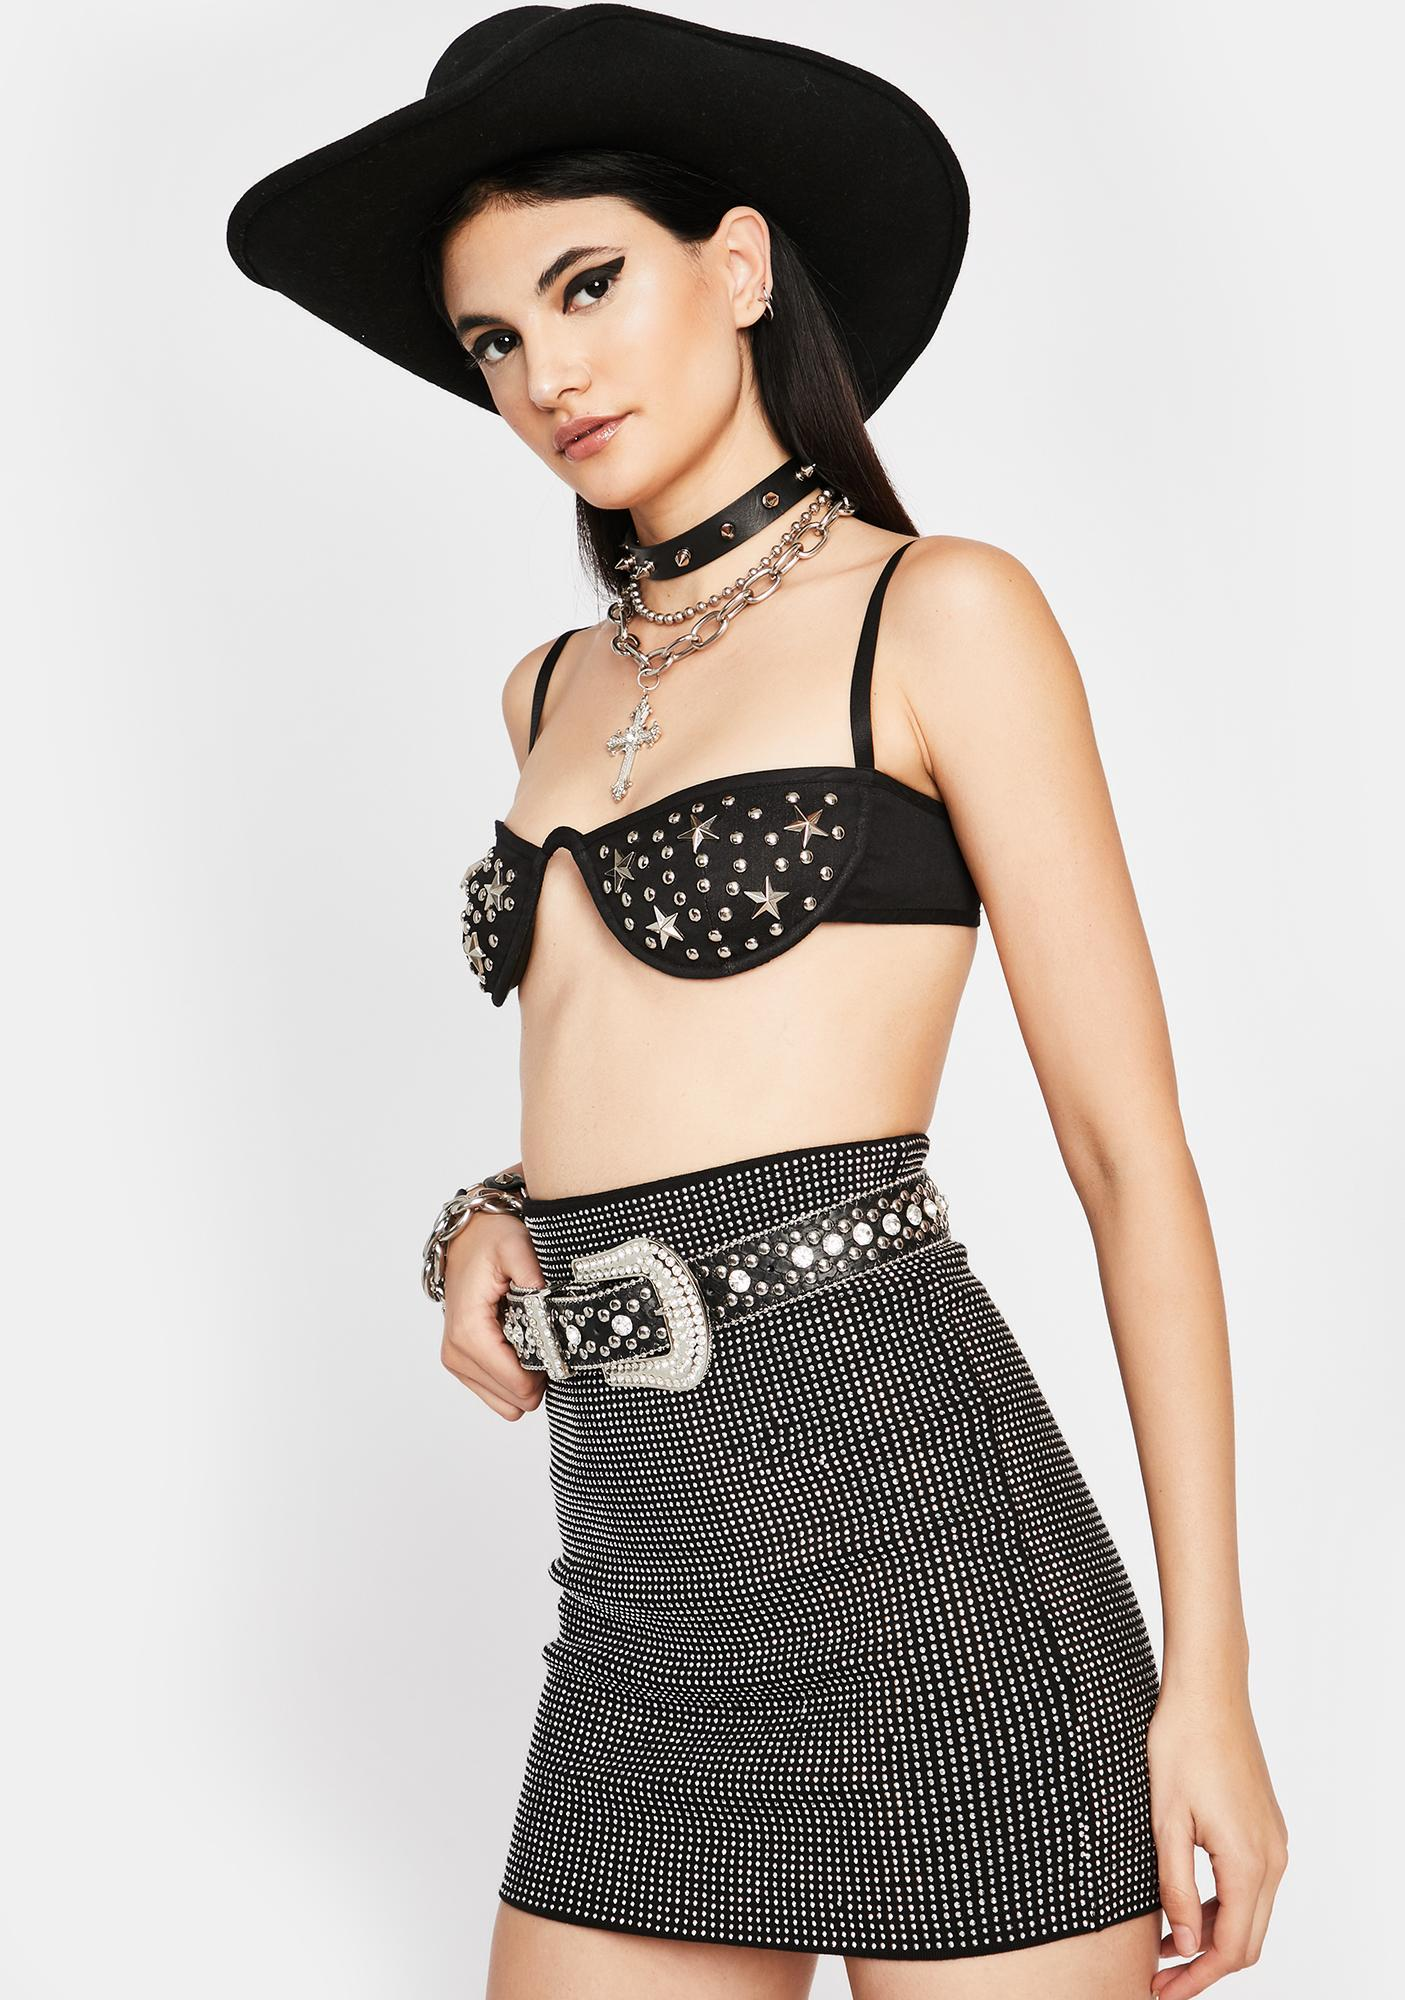 About That Bling Rhinestone Skirt